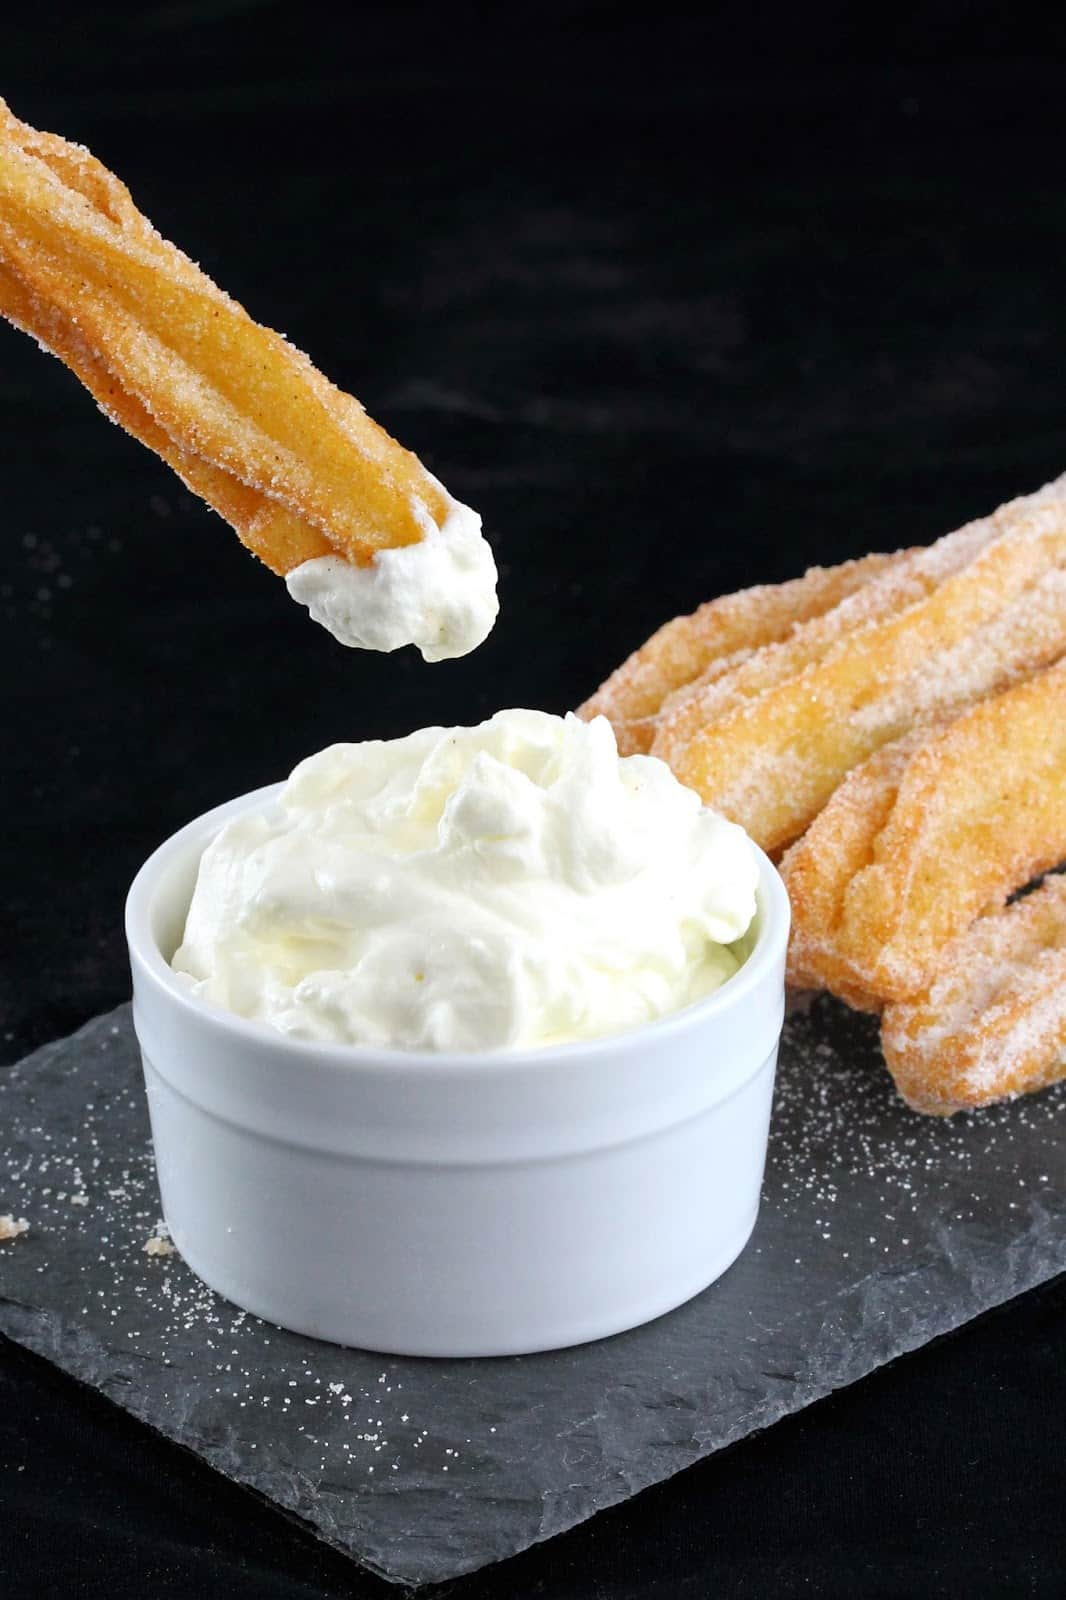 Churro being dipped into cream.